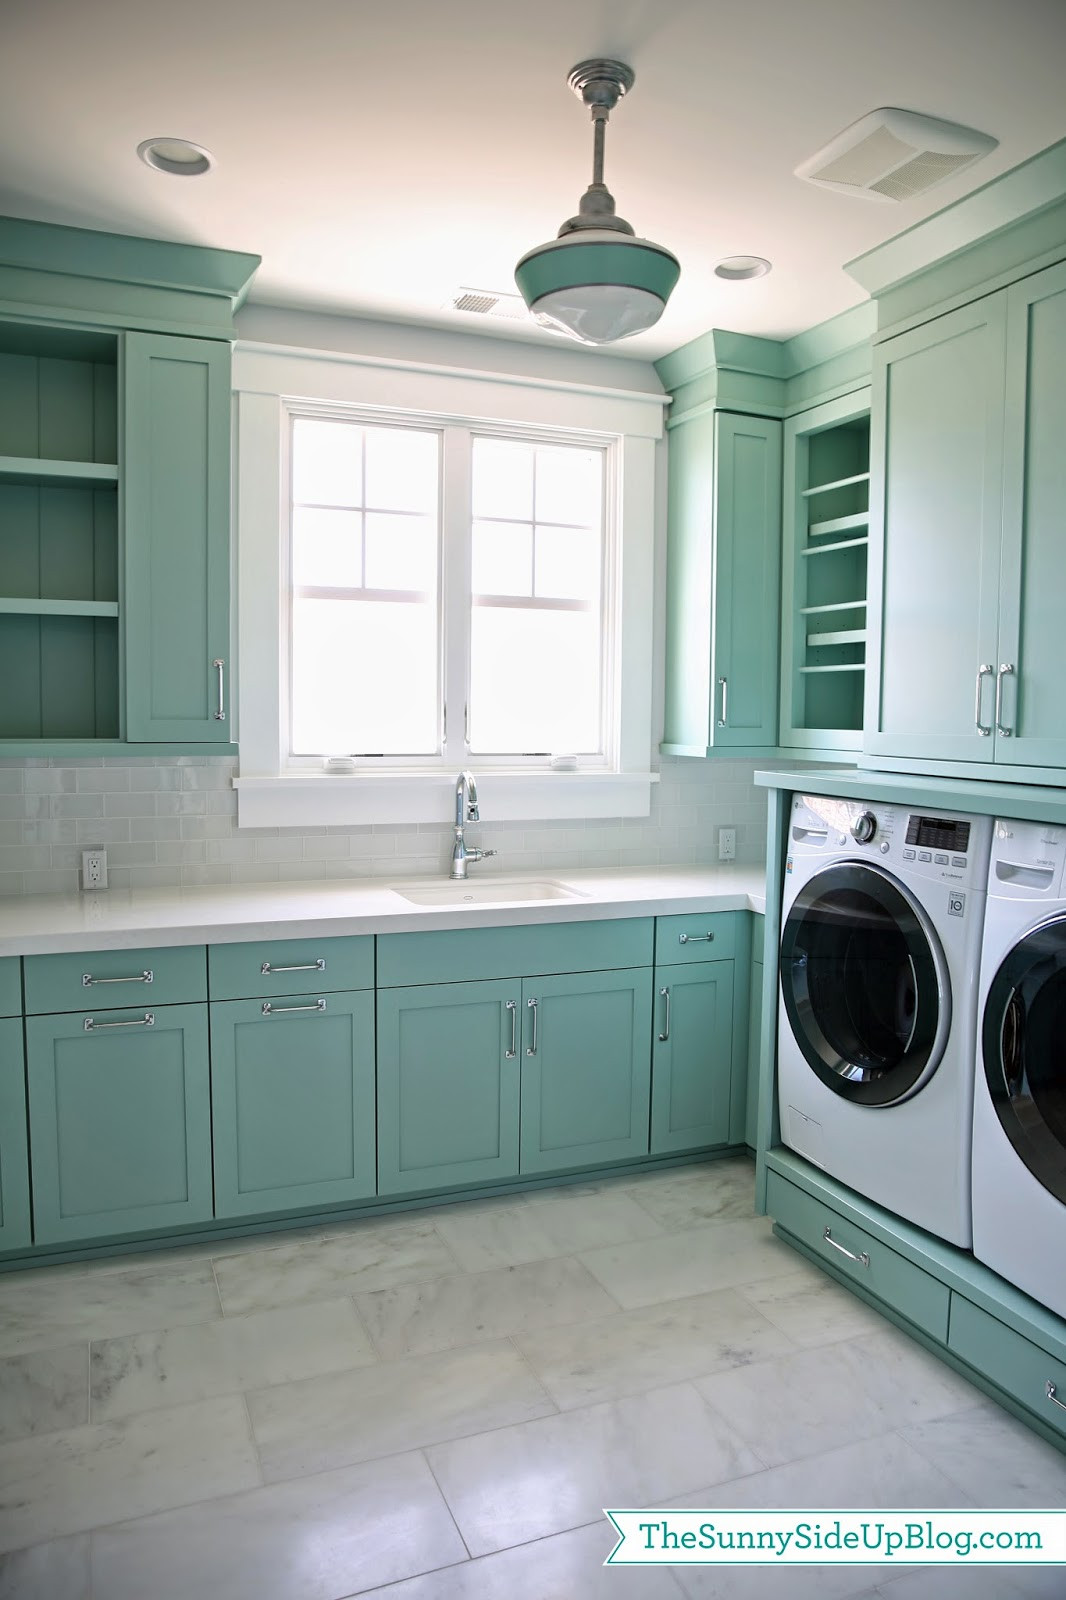 Best ideas about The Laundry Room . Save or Pin Upstairs Laundry Room The Sunny Side Up Blog Now.